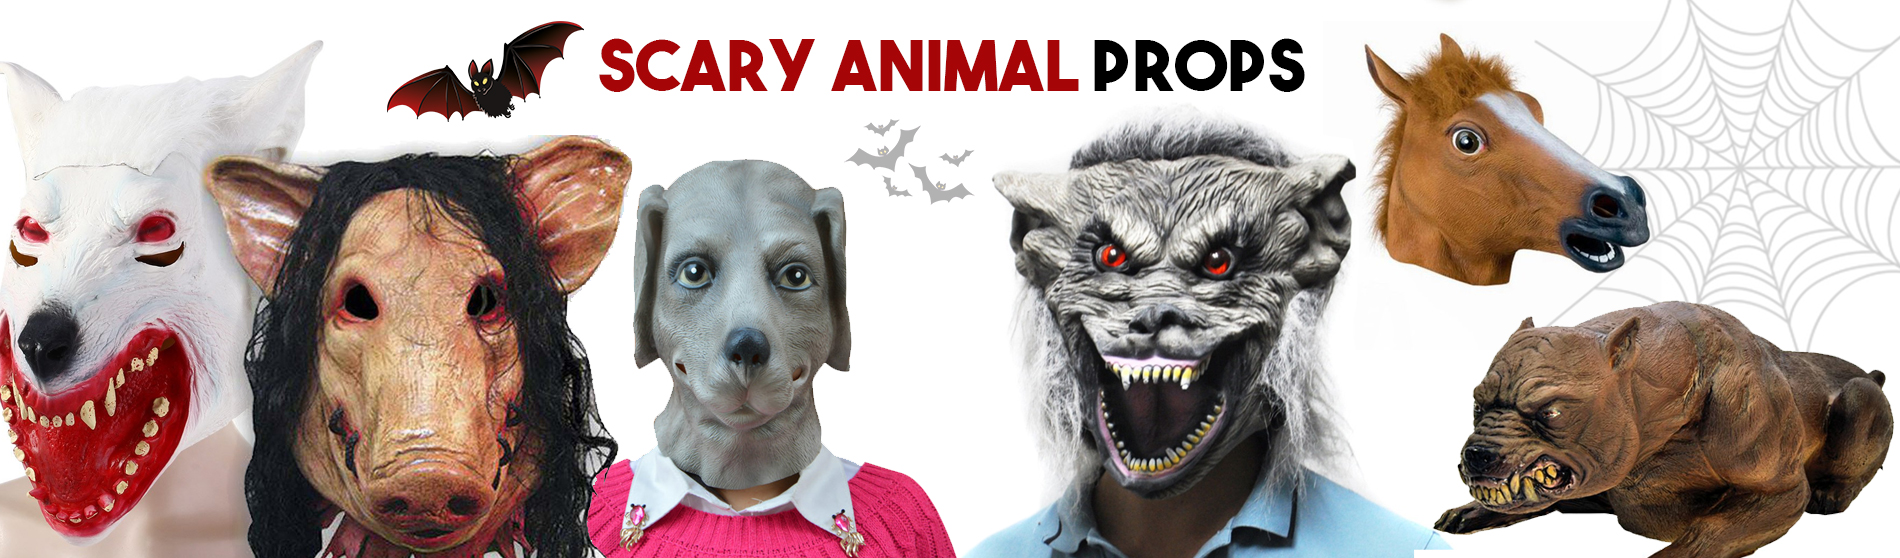 Scary-Animal-Props